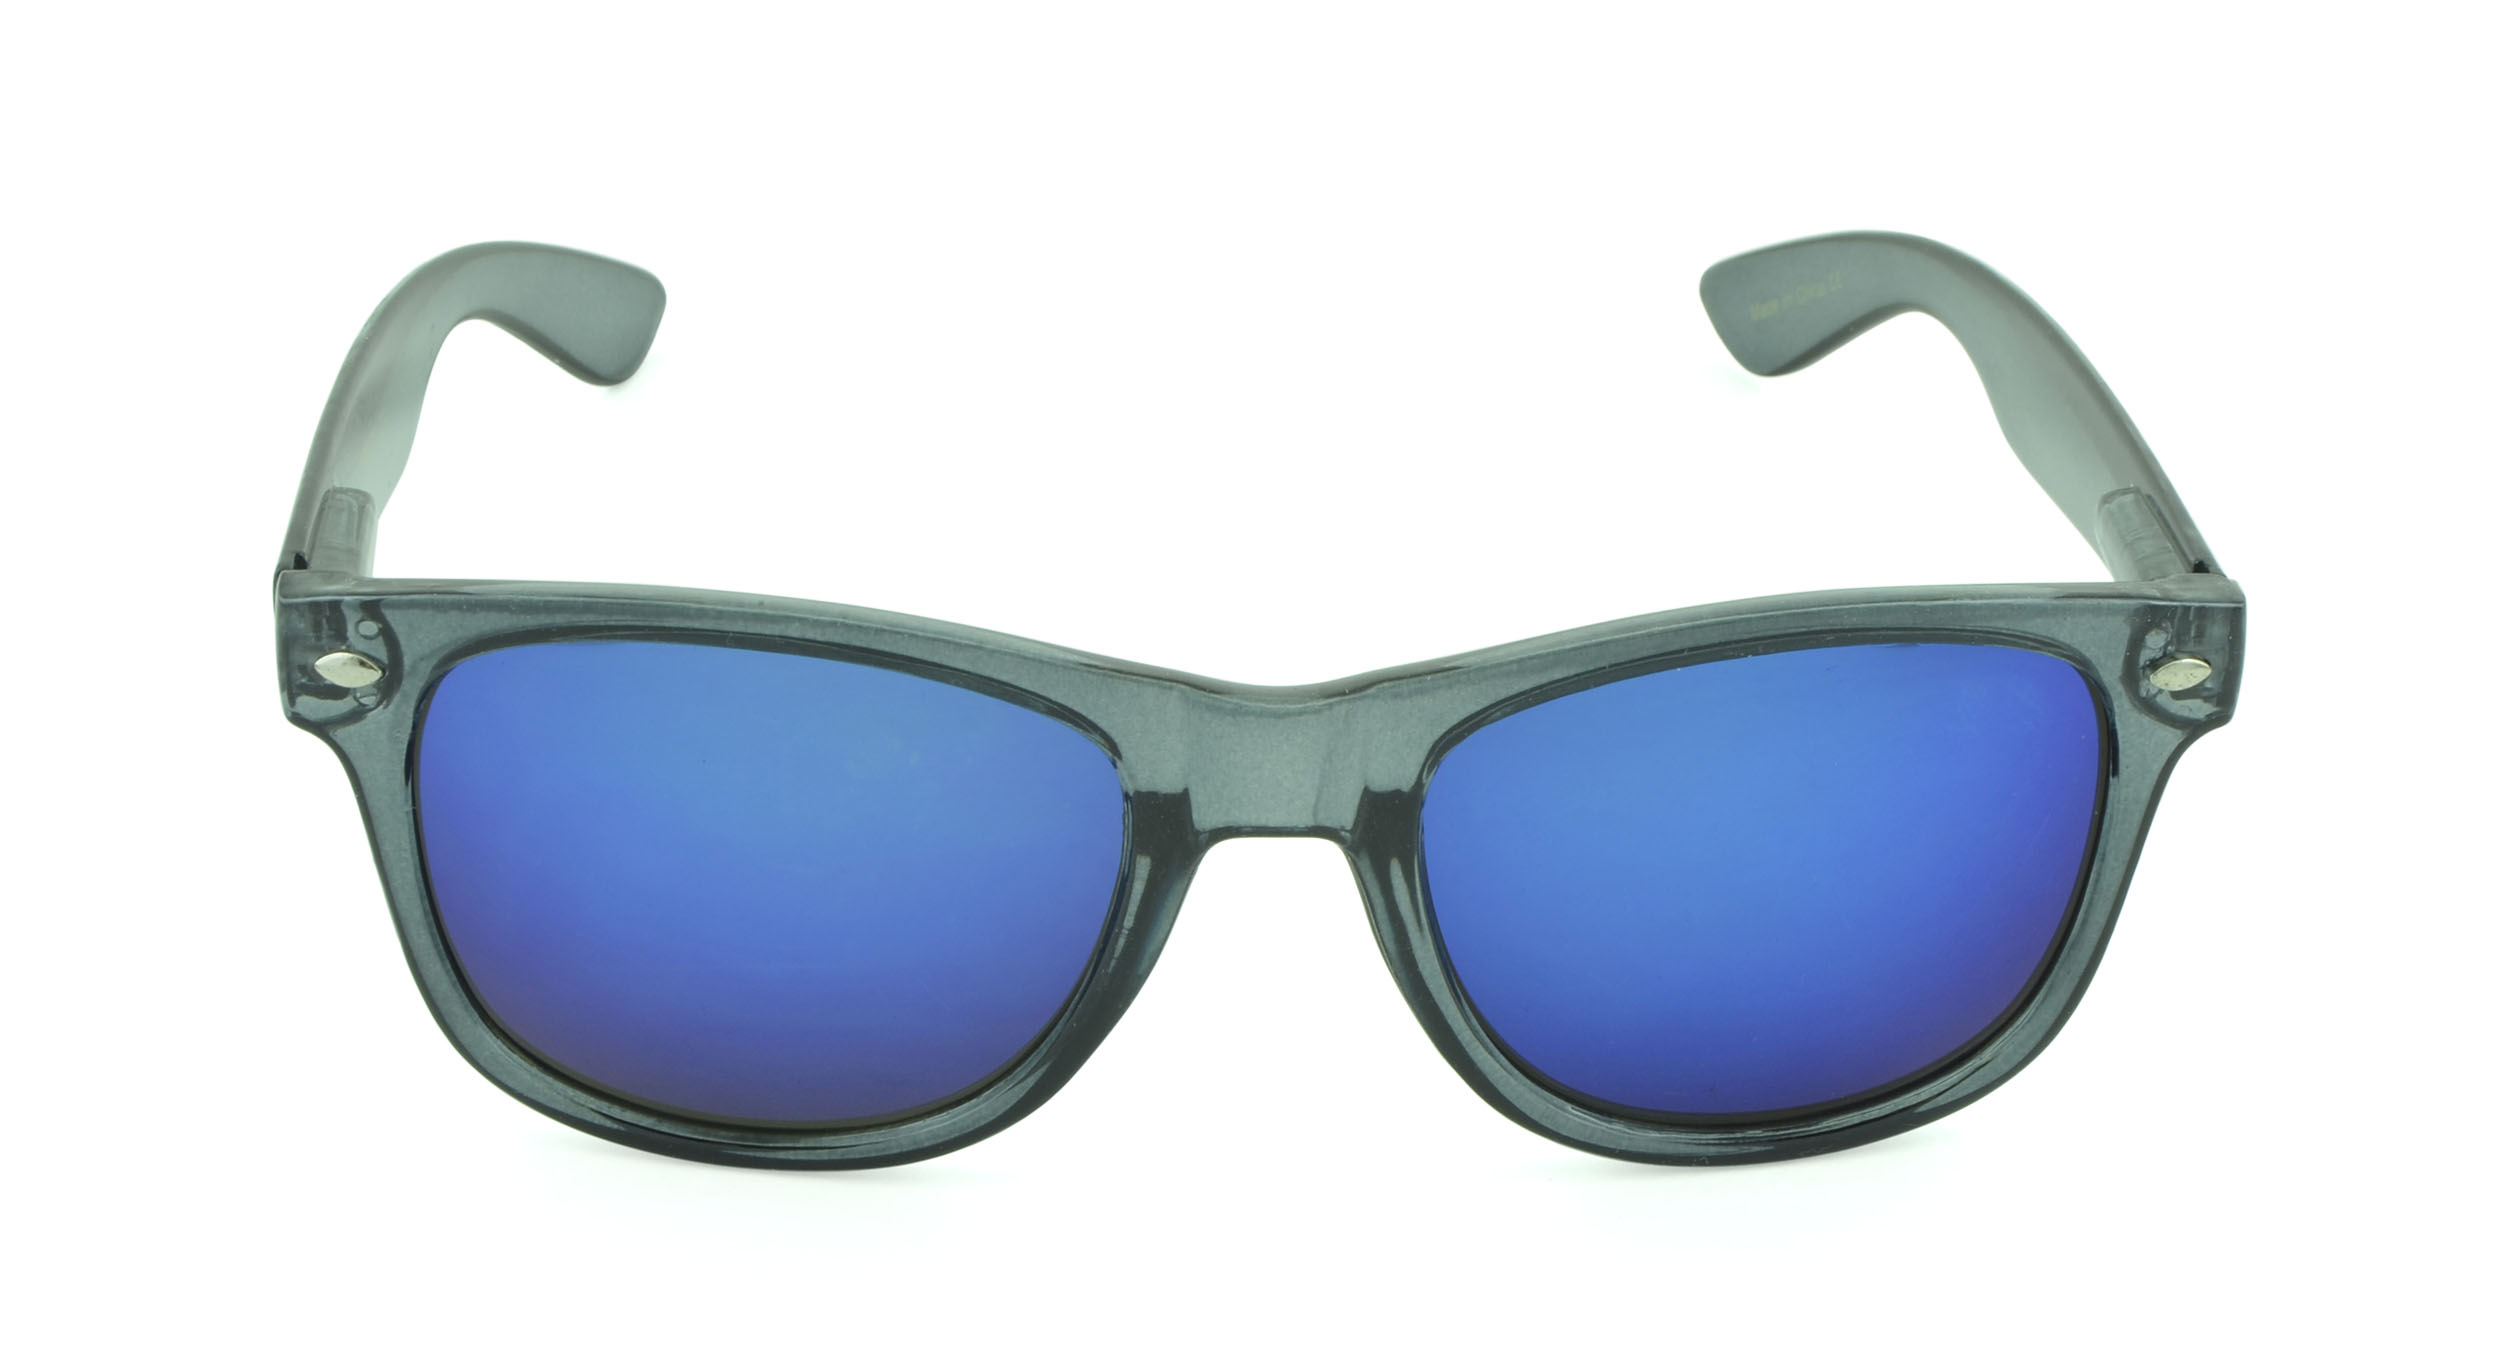 Belle Donne - Women and Men's Trendy Sunglasses - Assorted Colors - GunMetal One Size